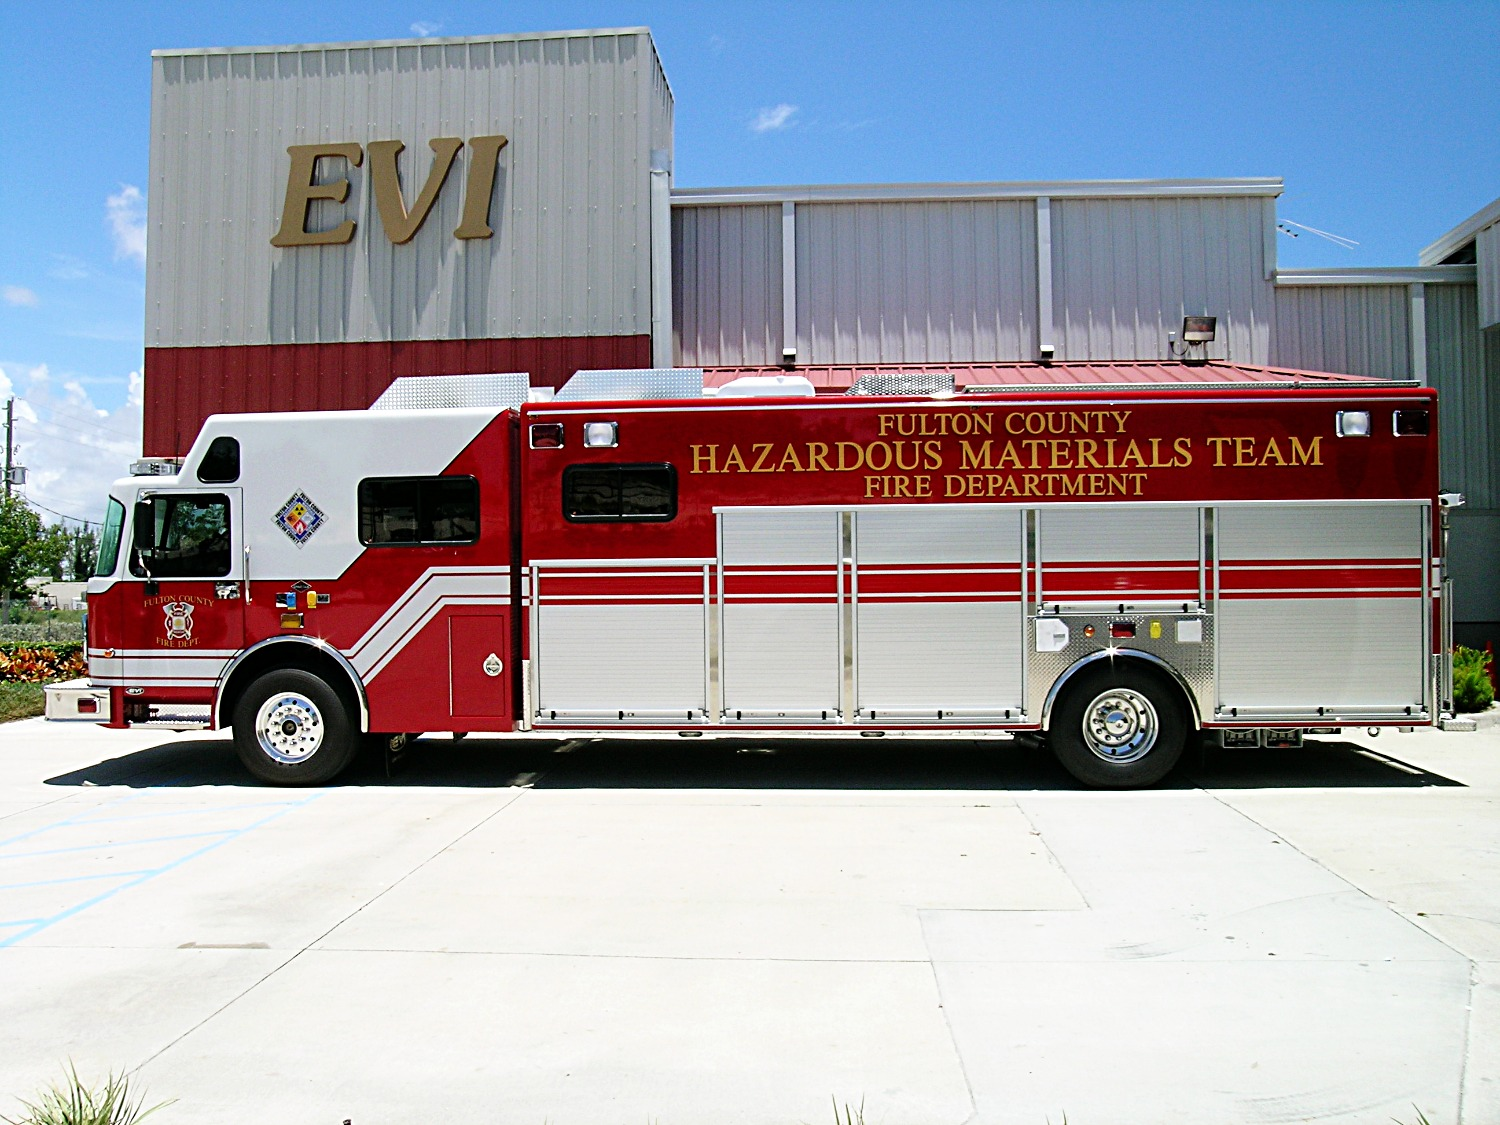 EVI Haz-Mat Response Vehicle